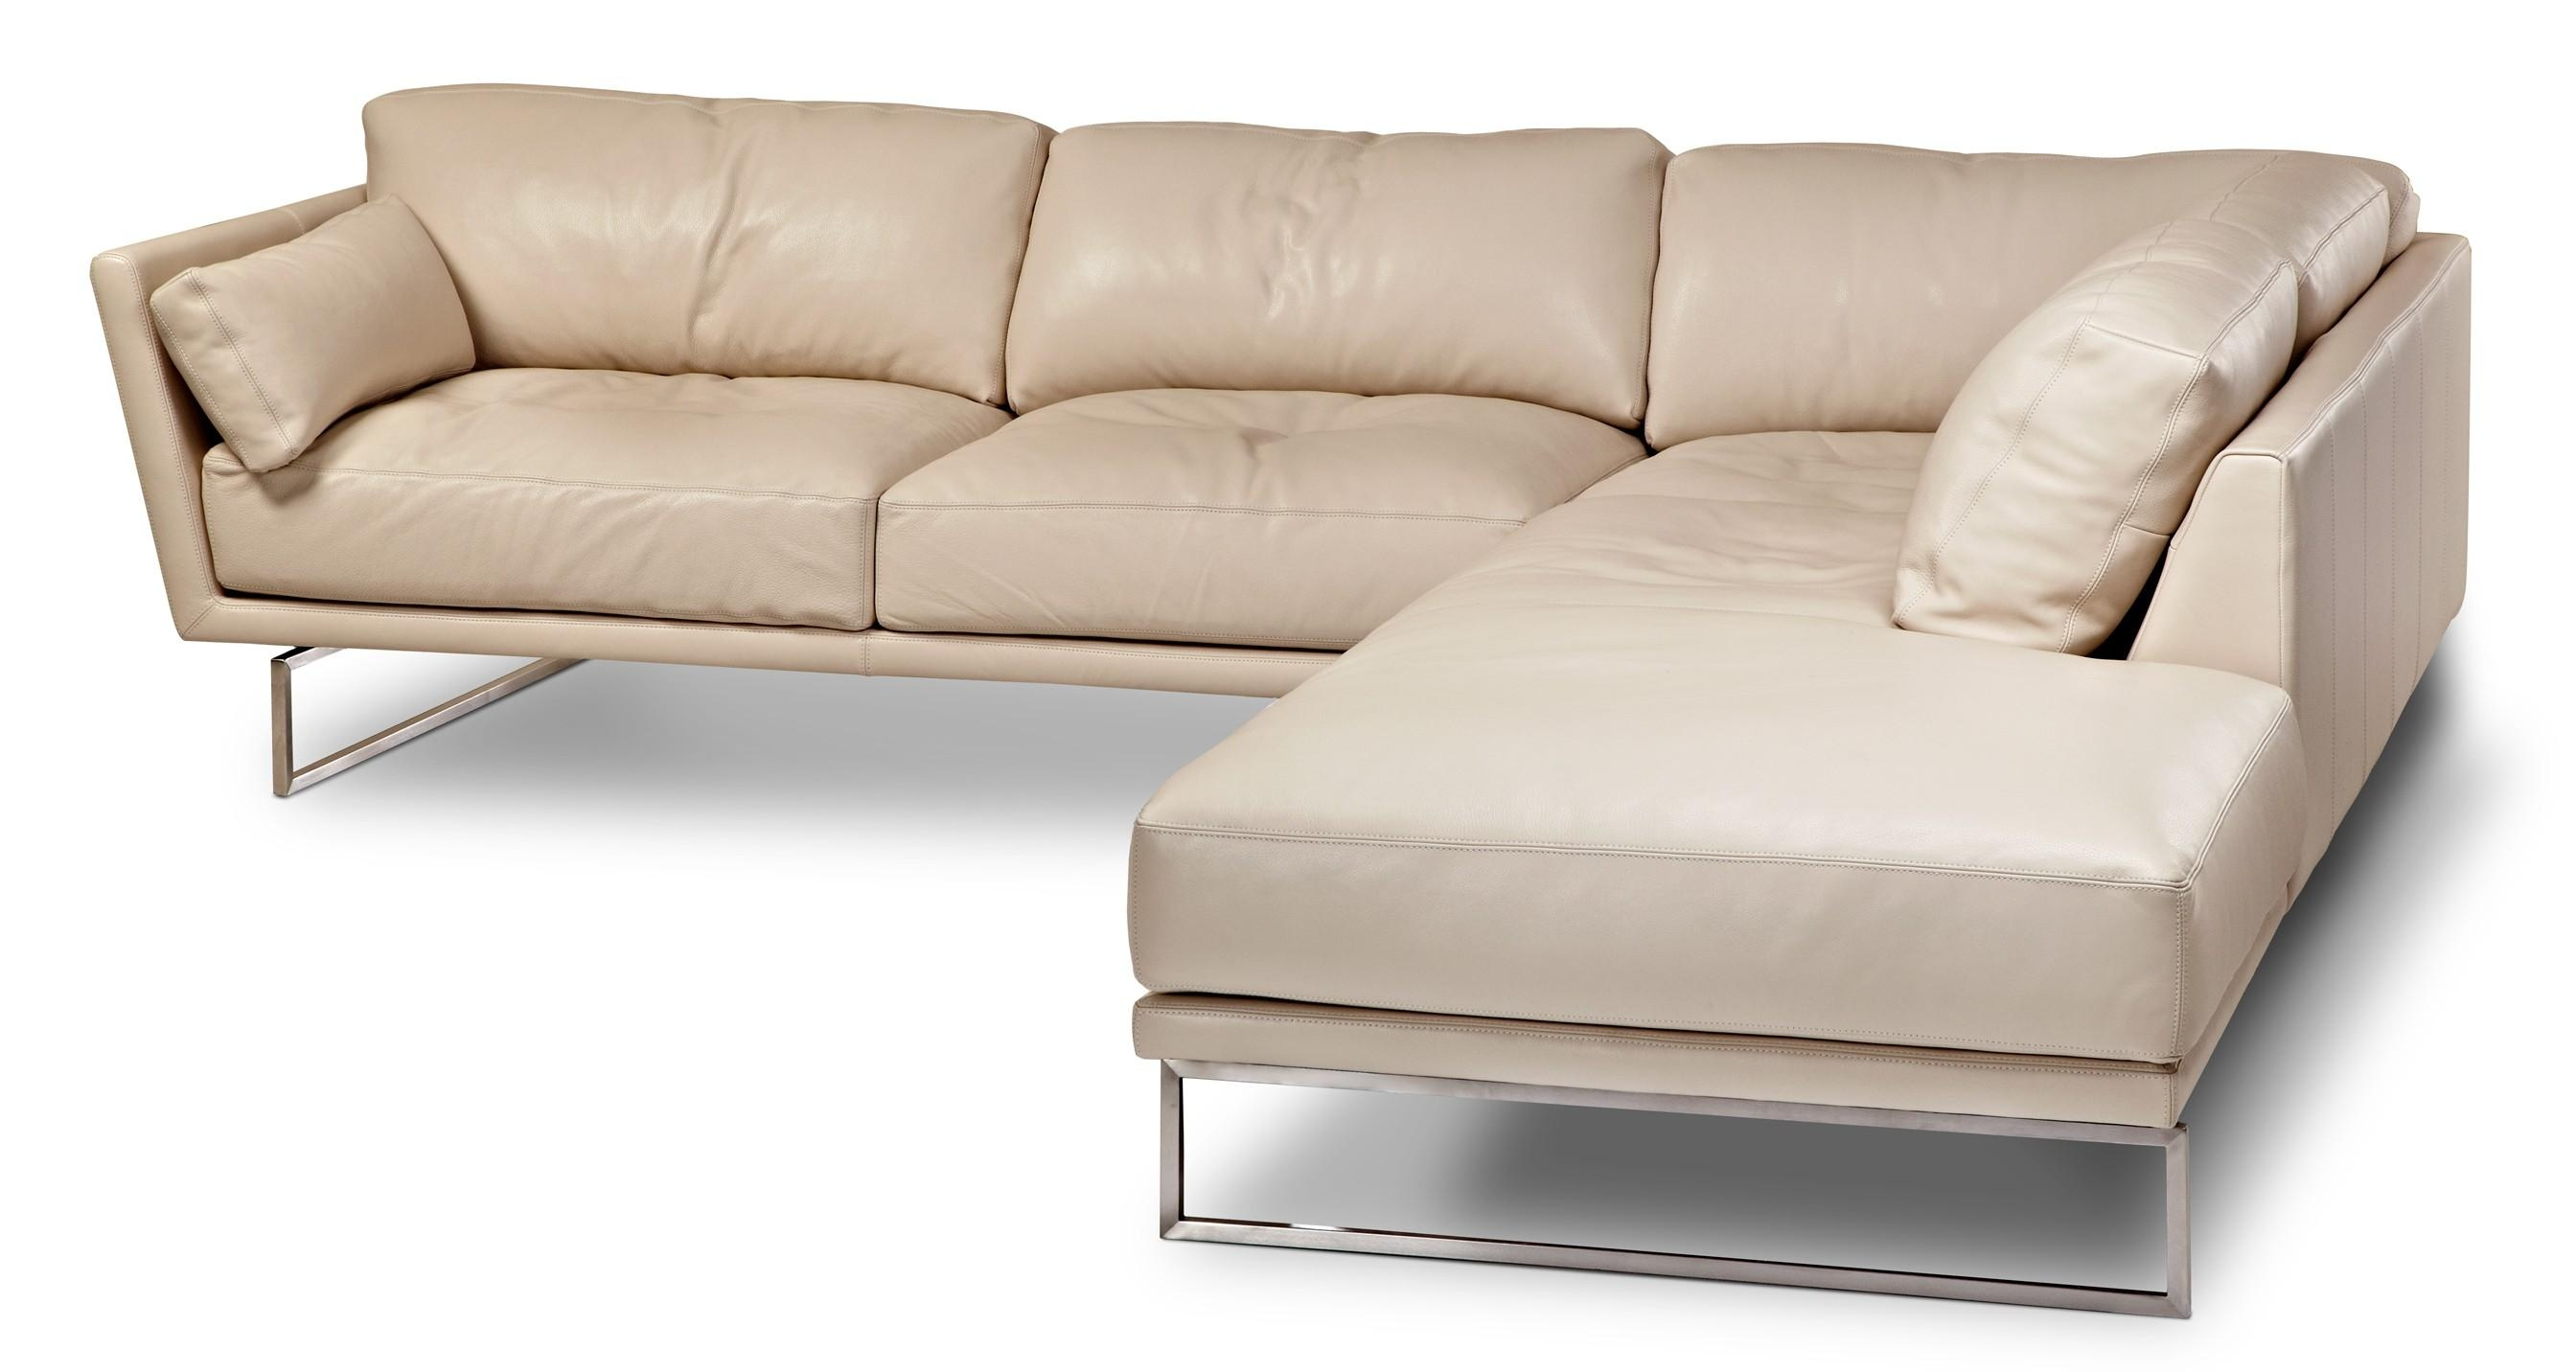 Sofas Center : Nashican Leather Sofa Discount Sleeper Sofaamerican With Sleek Sectional Sofa (View 10 of 20)